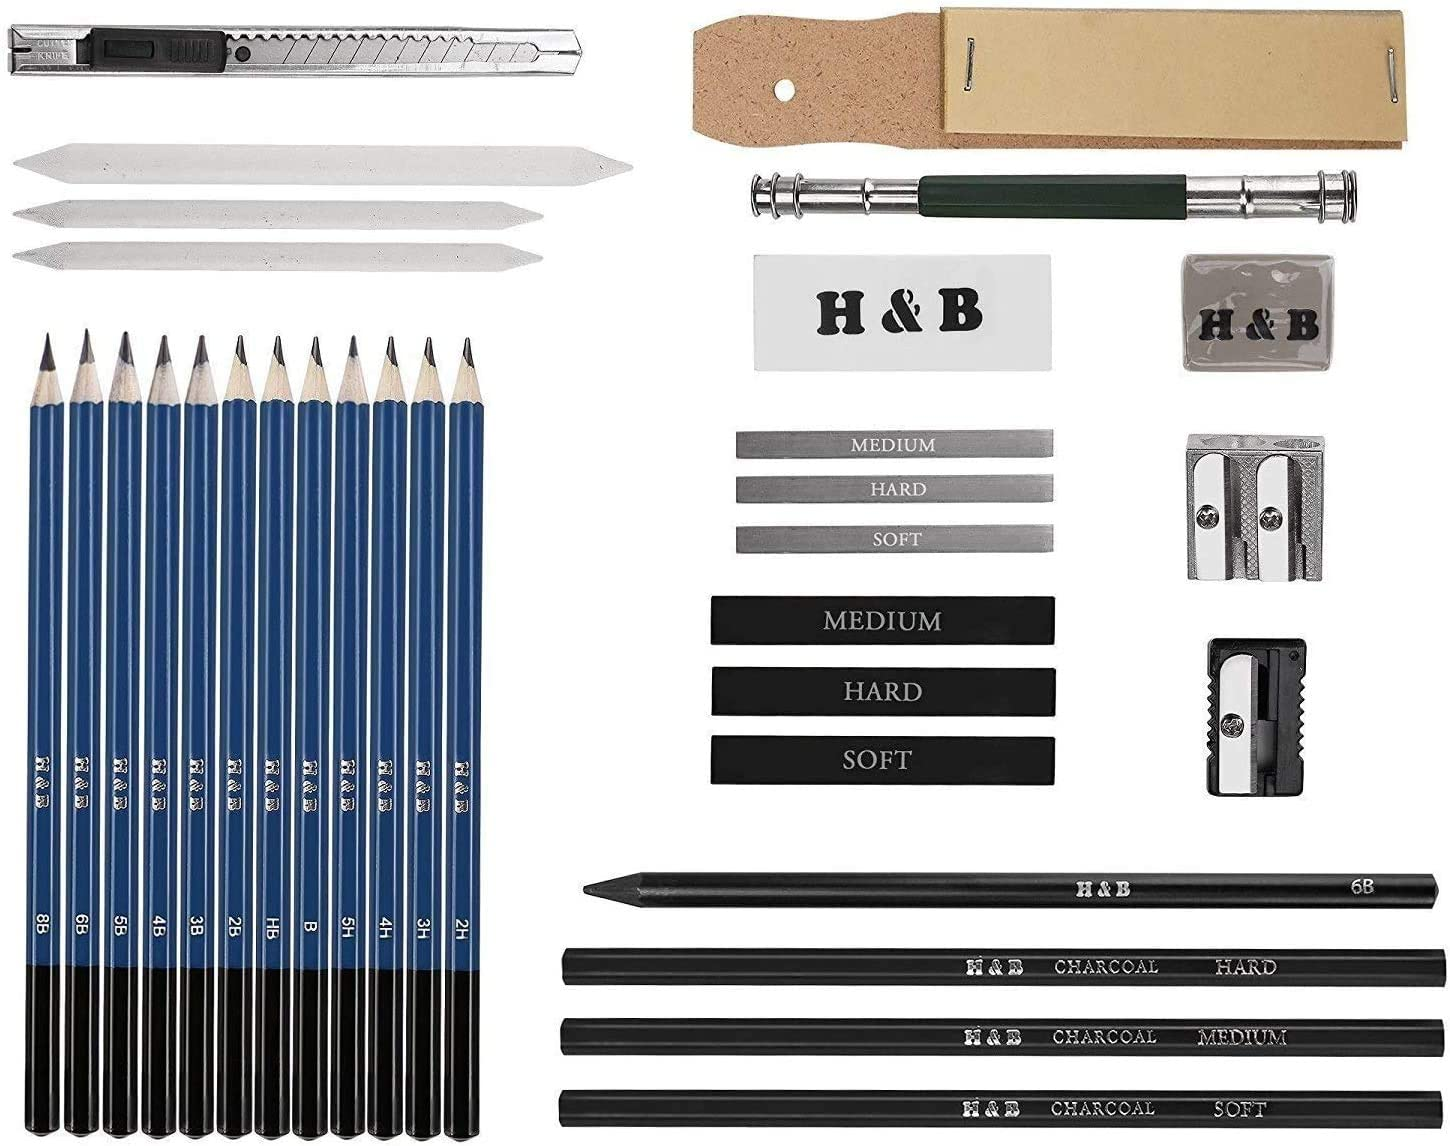 Professional Painting Artists Sketch Pencil Set Sketch Charcoal Graphite Sticks Pen Kit 33 pieces Wood Pencils Sketch Pencils Stationery Set Lypumso Drawing Pencils